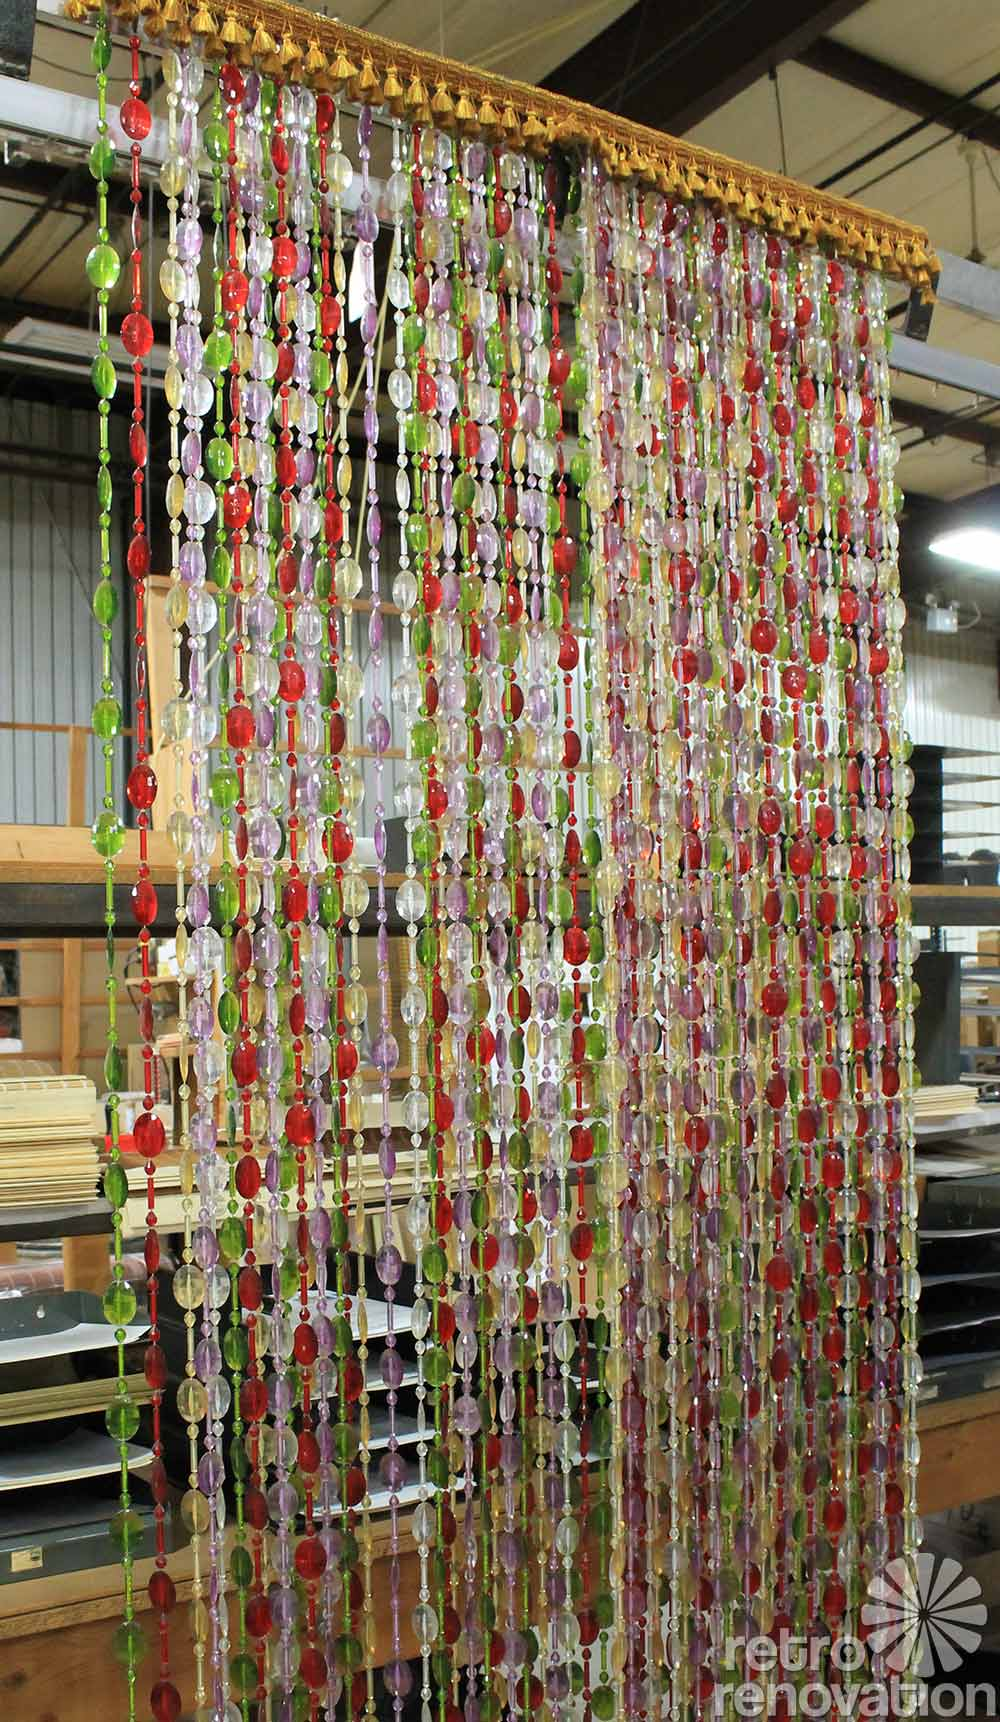 Beauti Vue Beaded Curtains Made In The Usa New Old Stock In 13 Mix N Match Colors